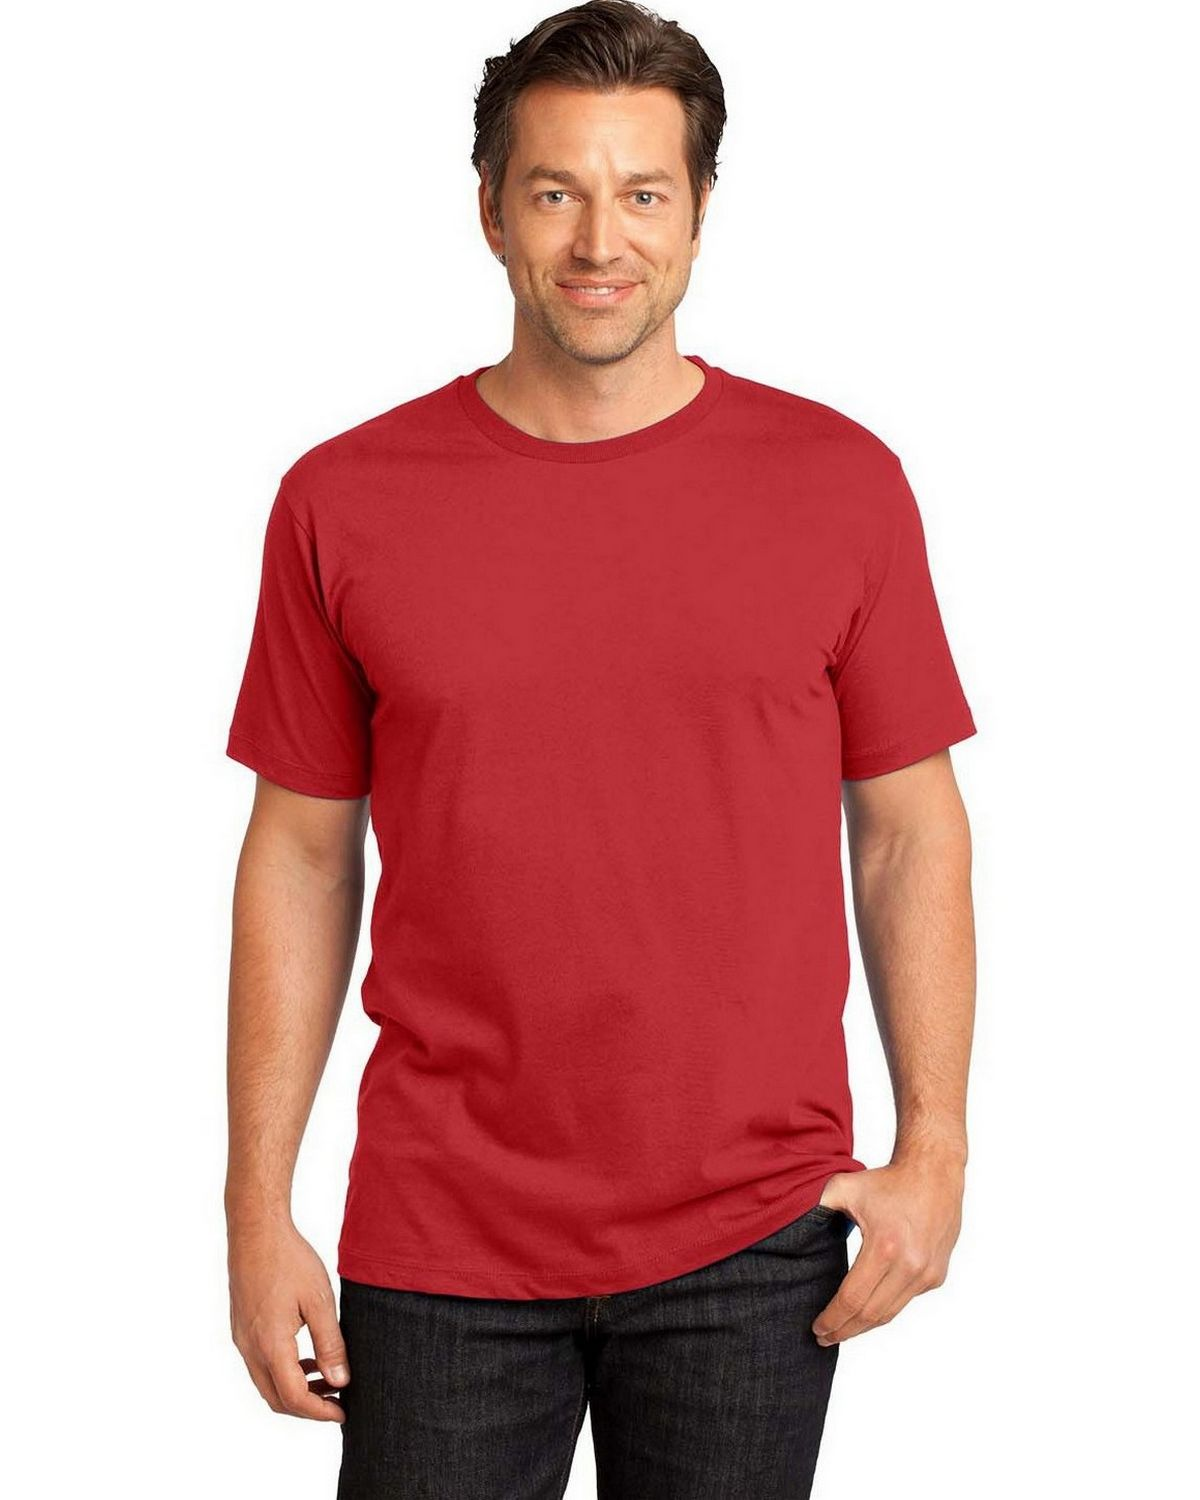 District Made DT104 S-Sleeve Perfect Tee - Classic Red - M DT104